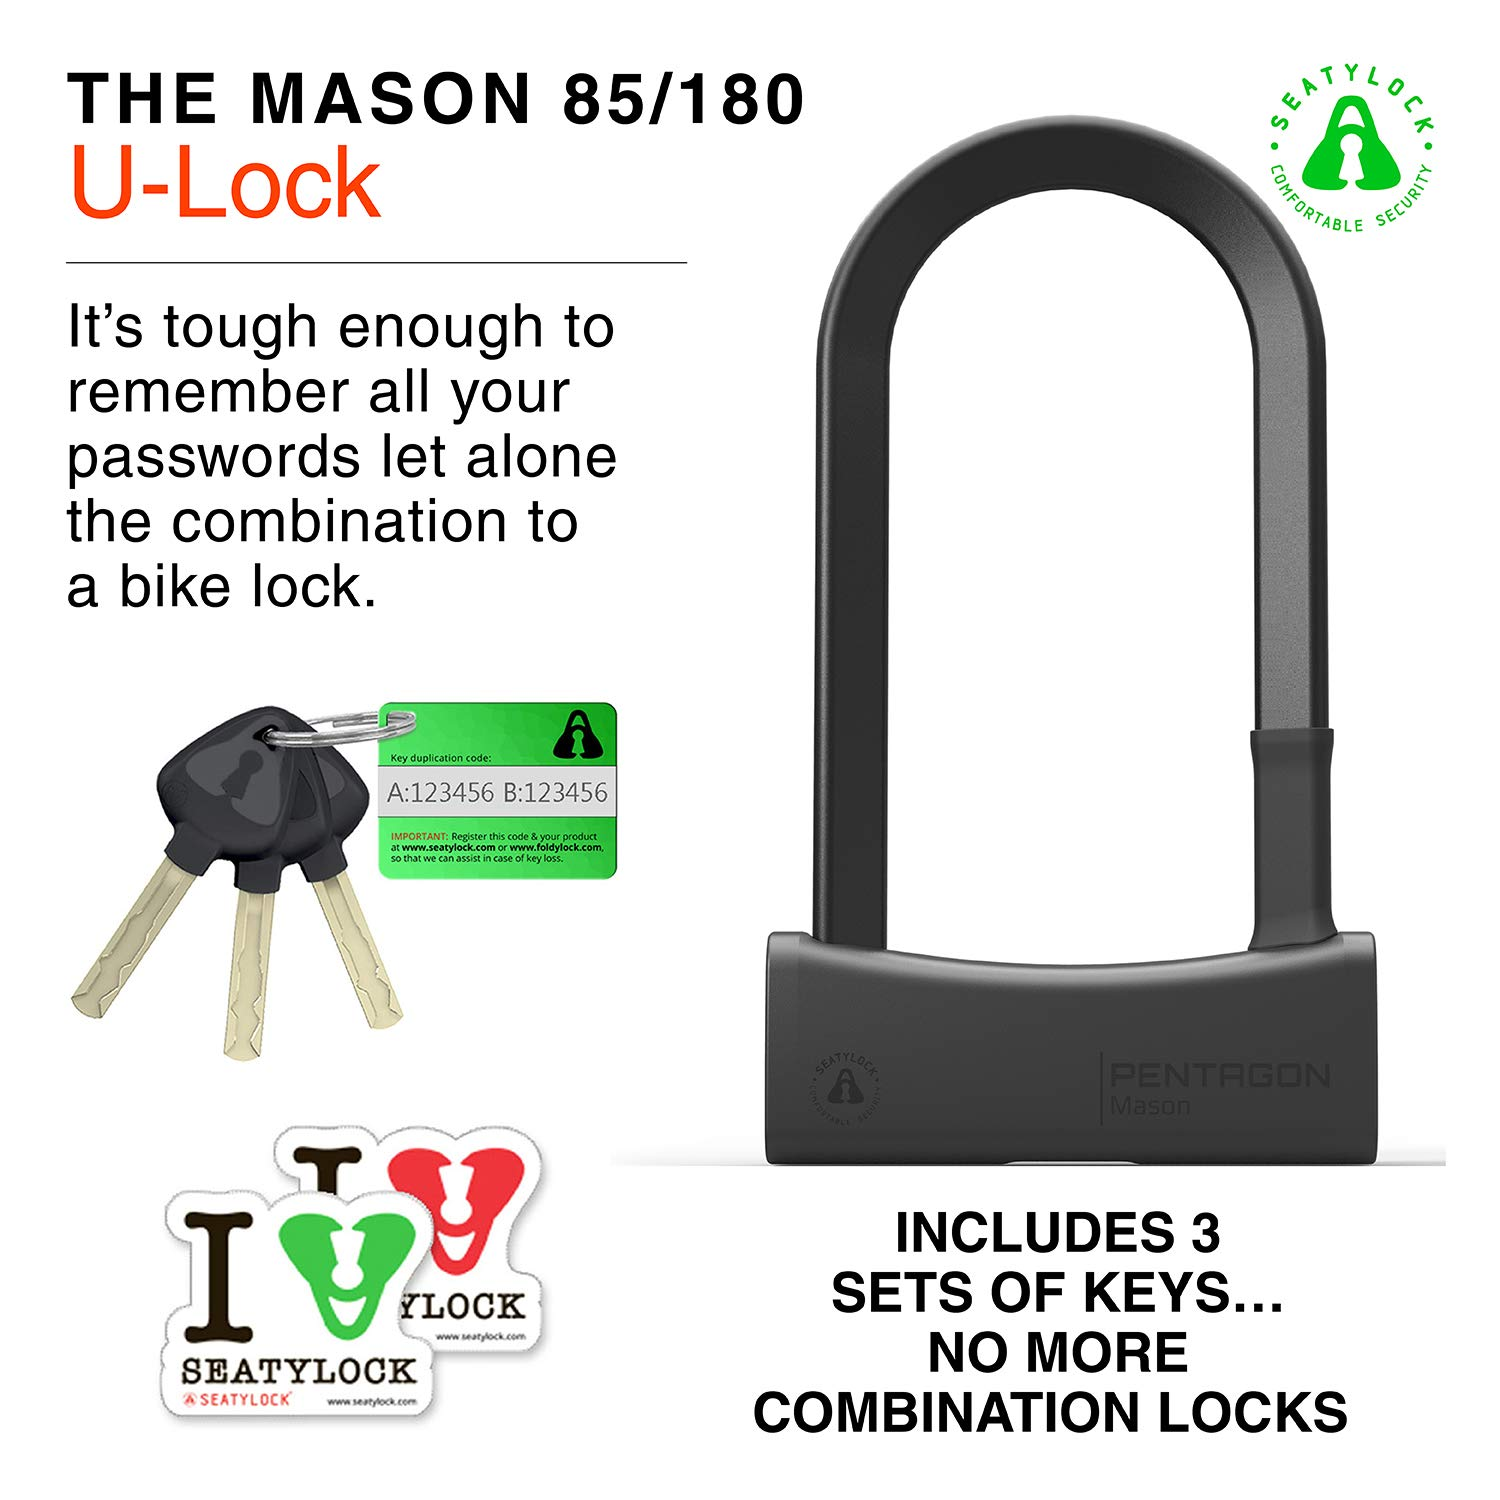 Double Deadbolt and Drill Resistant Features Seatylock Mason Sold Secure Gold Bicycle U-Lock with 17mm Thick Patented Triangular Crossbars Heavy Duty Bike Lock with Keys